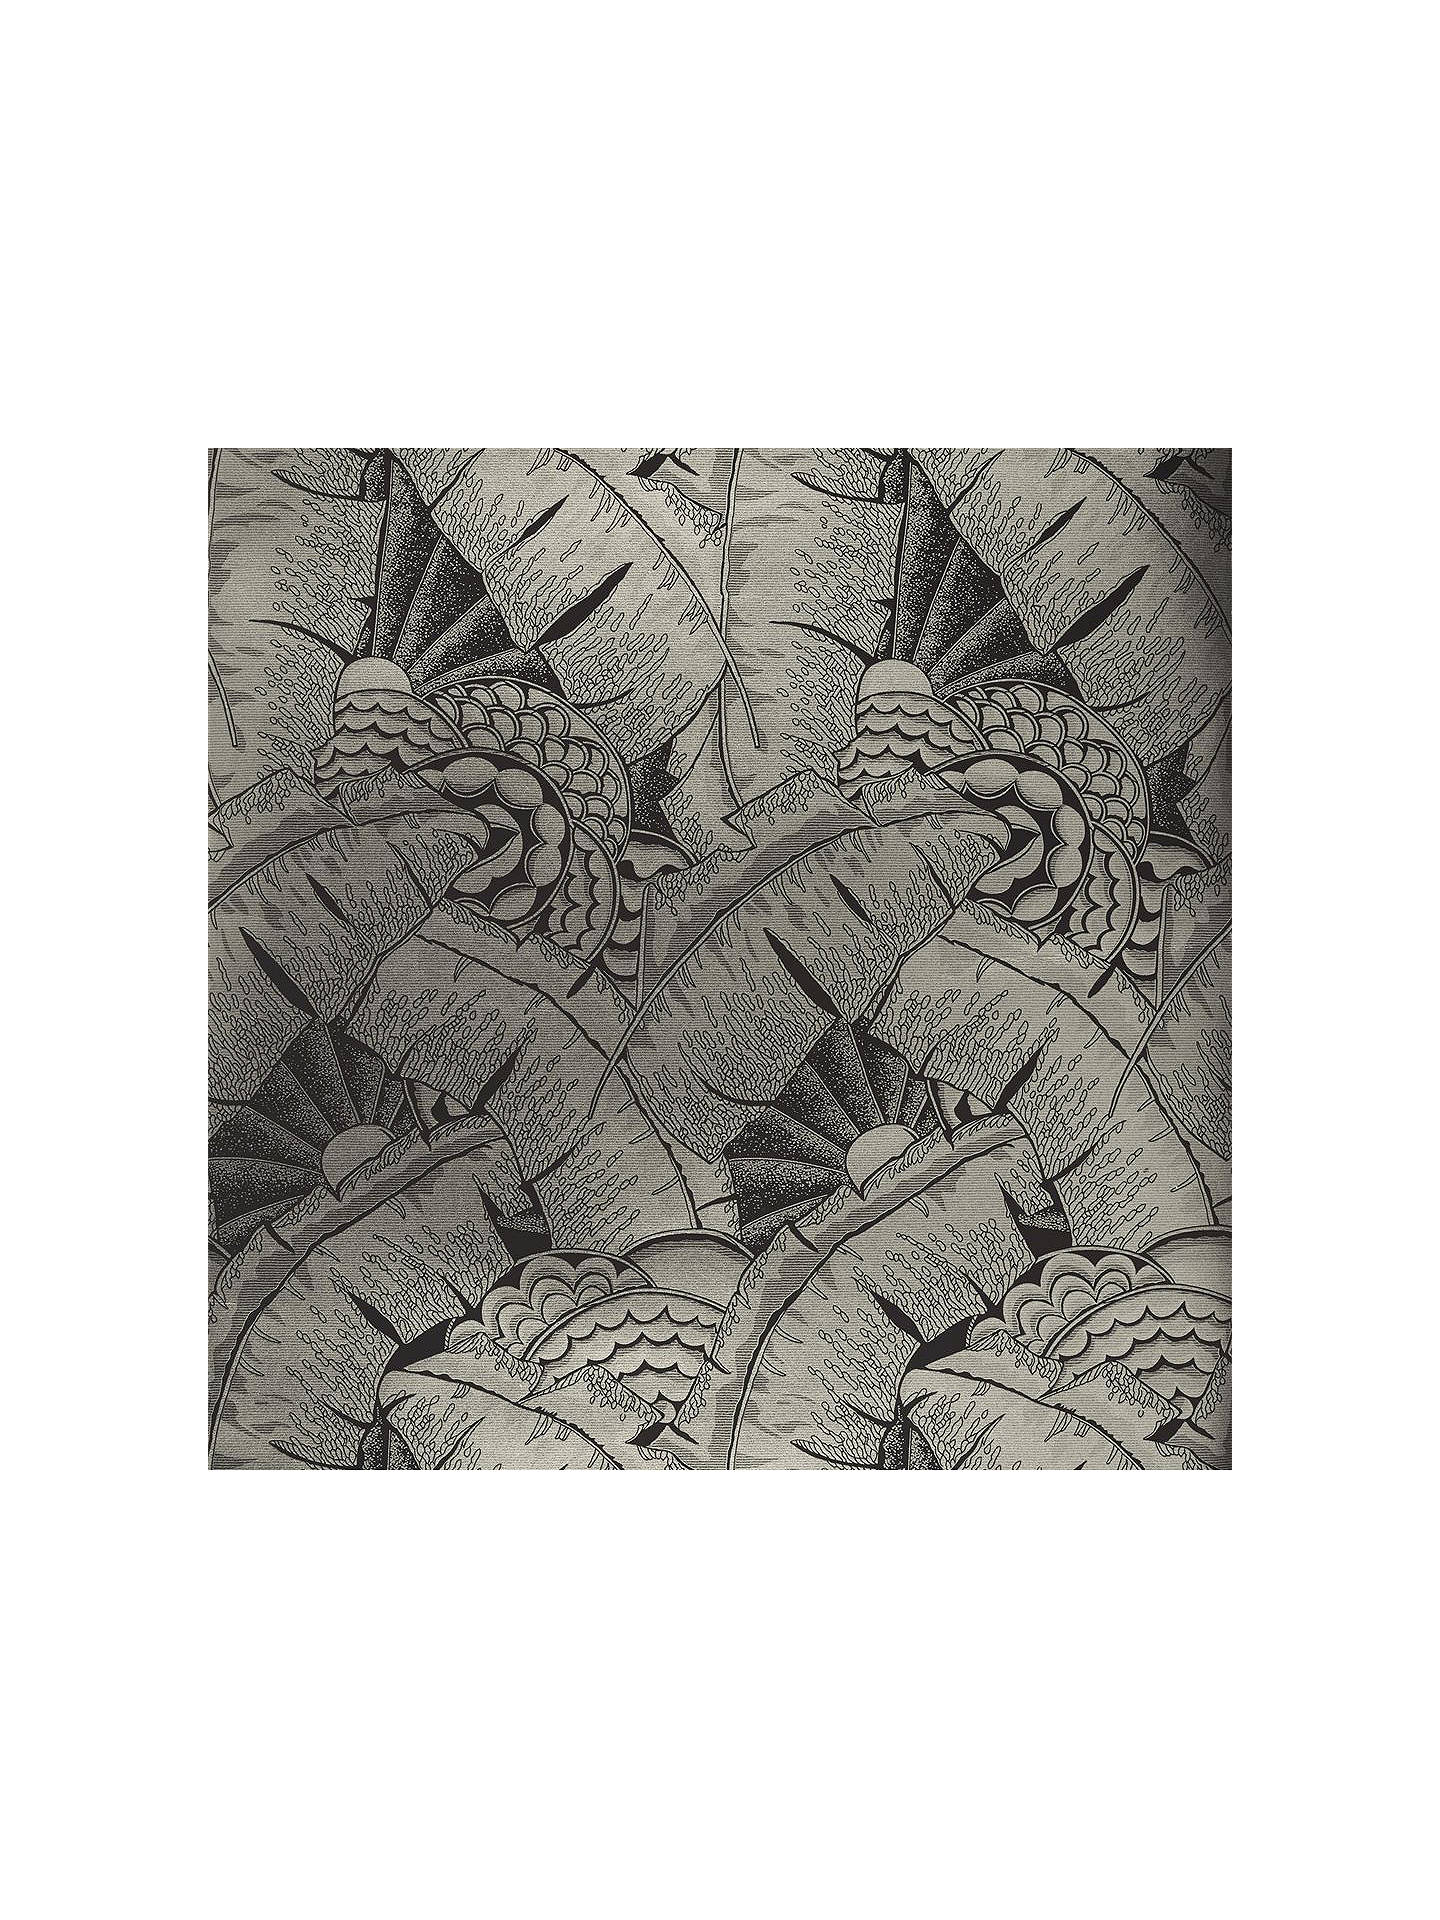 Buy Ralph Lauren Coco De Mer Wallpaper, PRL5010/03 Online at johnlewis.com